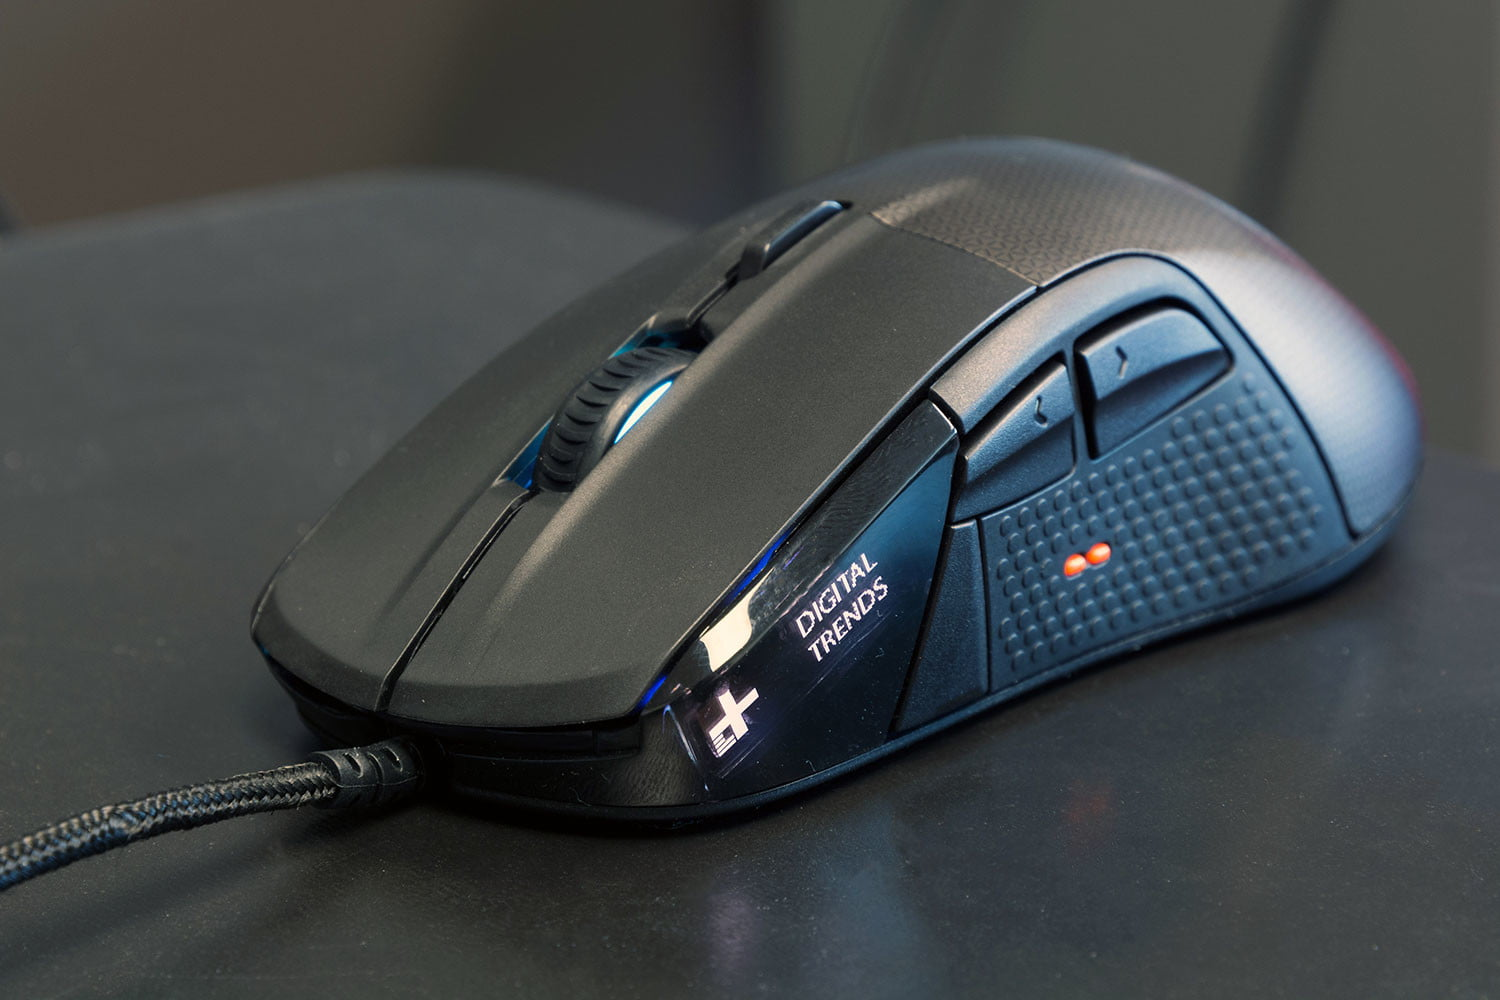 SteelSeries Rival 700 Gaming Mouse Review | A Solid Weapon